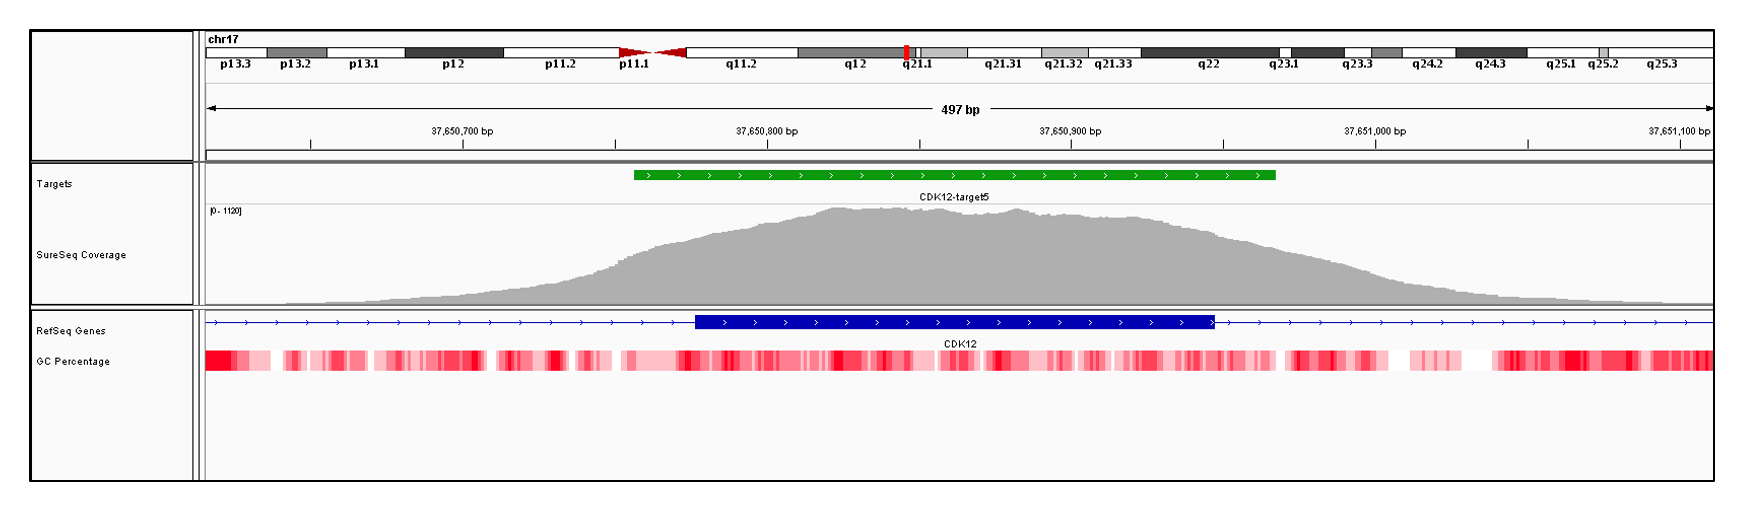 CDK12 Exon 5 (hg19 chr17:37650777-37650947). Depth of coverage per base (grey). Targeted region (green). Gene coding region as defined by RefSeq (blue). GC percentage (red). Image